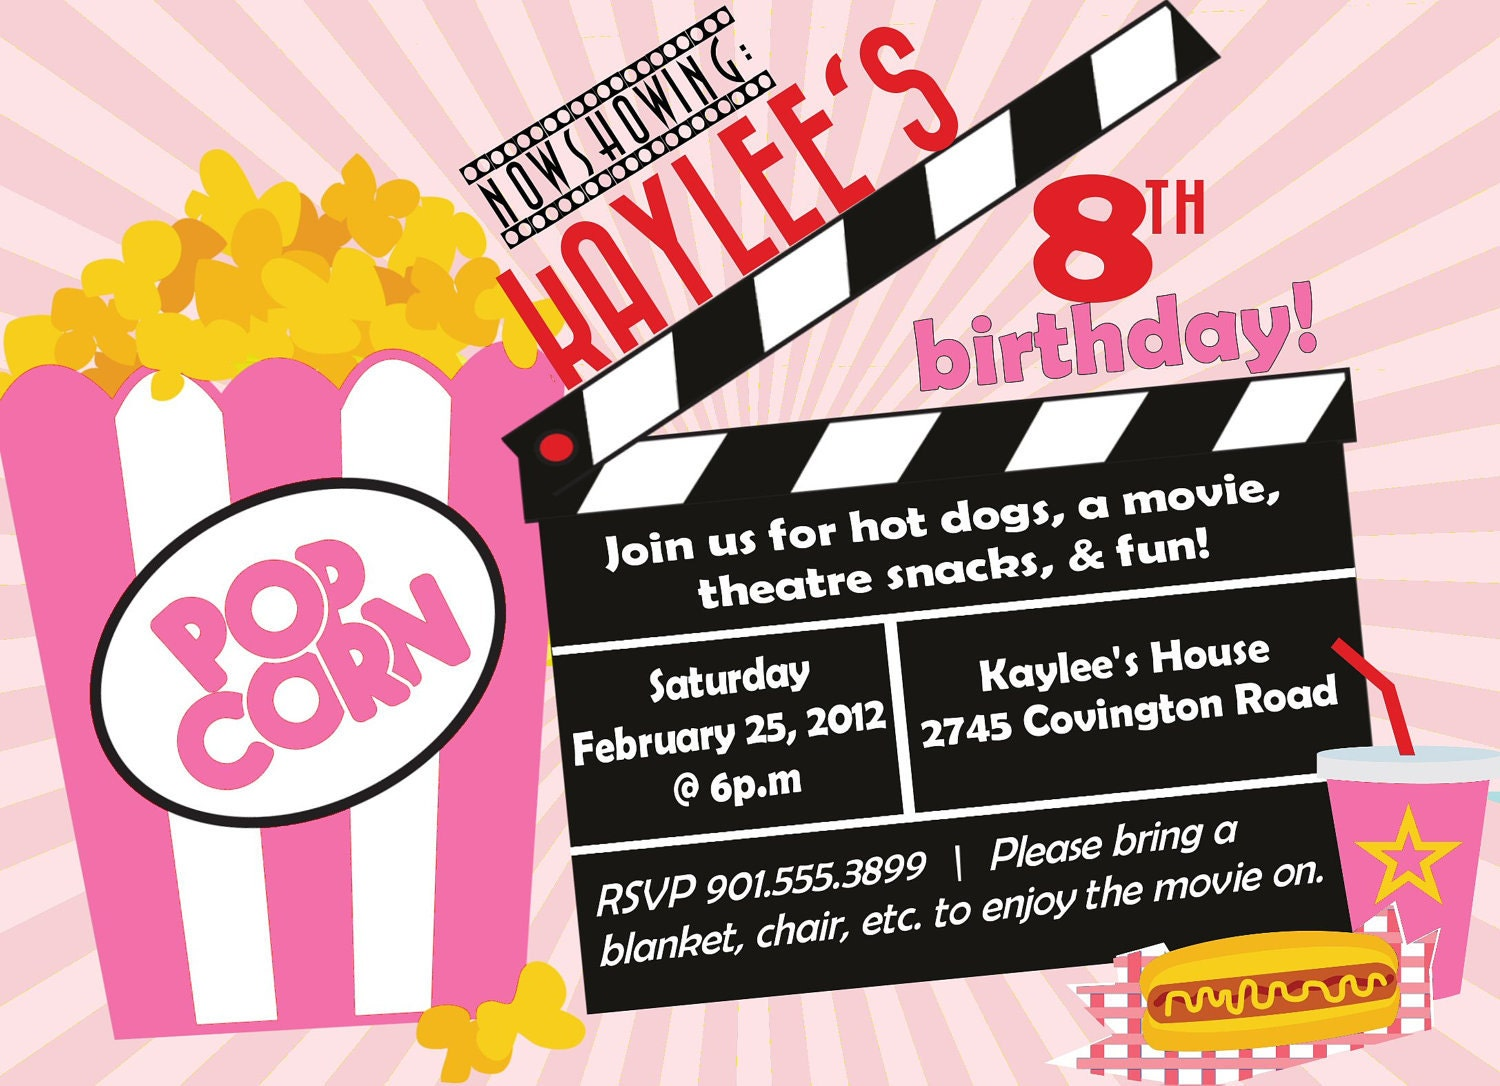 60 Bday Invitations is great invitations example